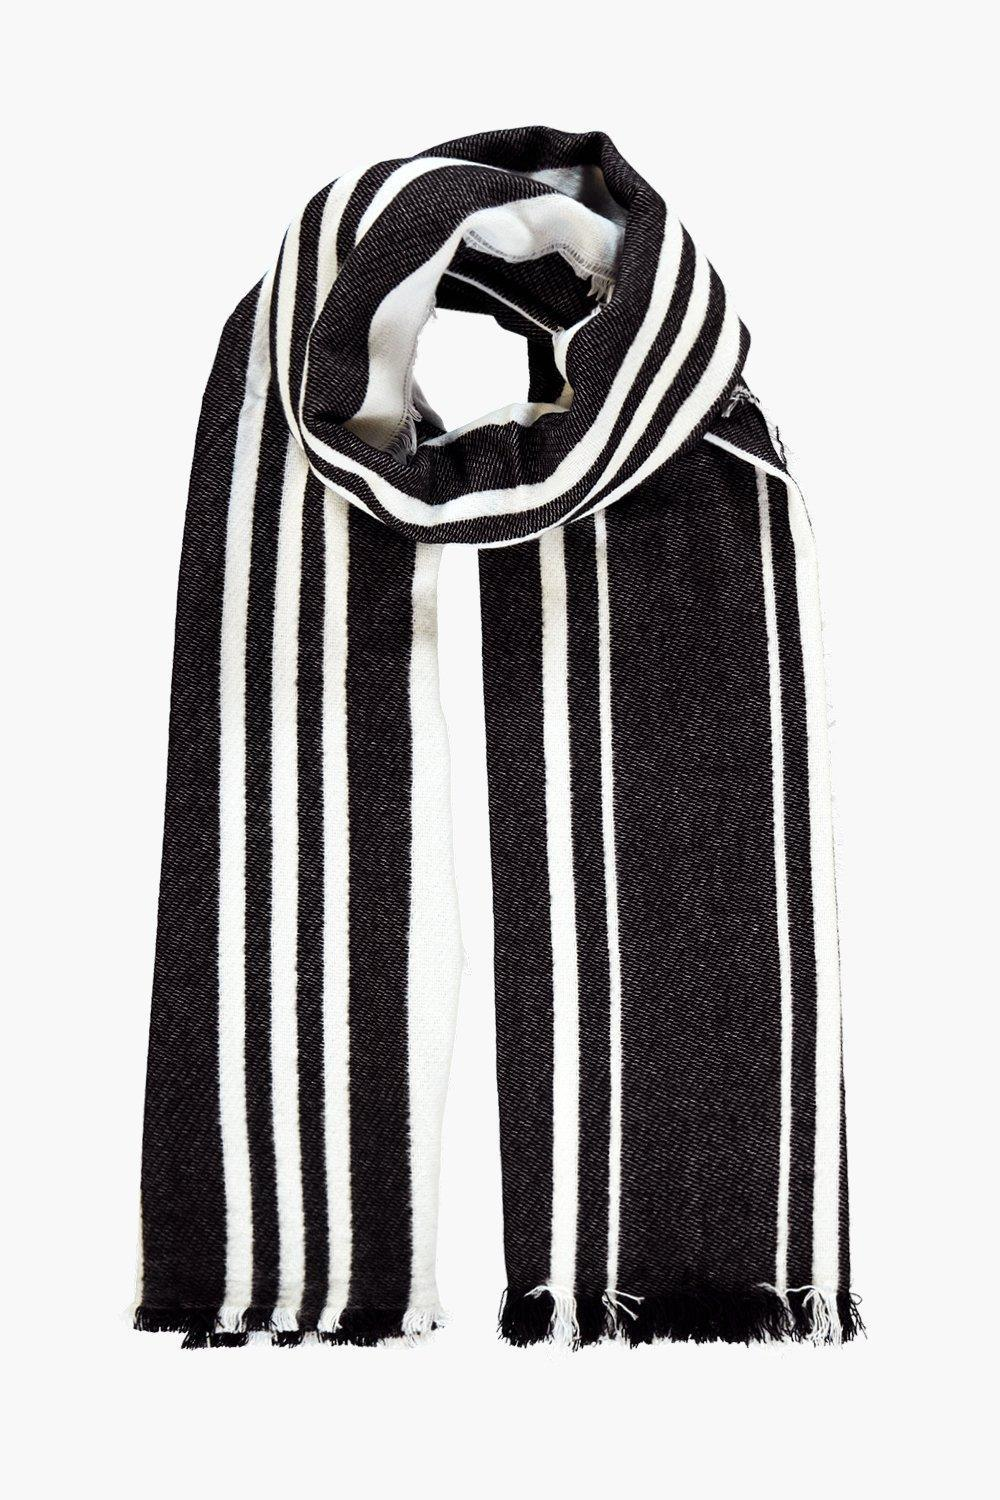 Varied Stripe Wool Oversize Scarf Black - secondary colour: white; predominant colour: black; occasions: casual, creative work; type of pattern: standard; style: regular; size: large; material: knits; pattern: vertical stripes; season: a/w 2016